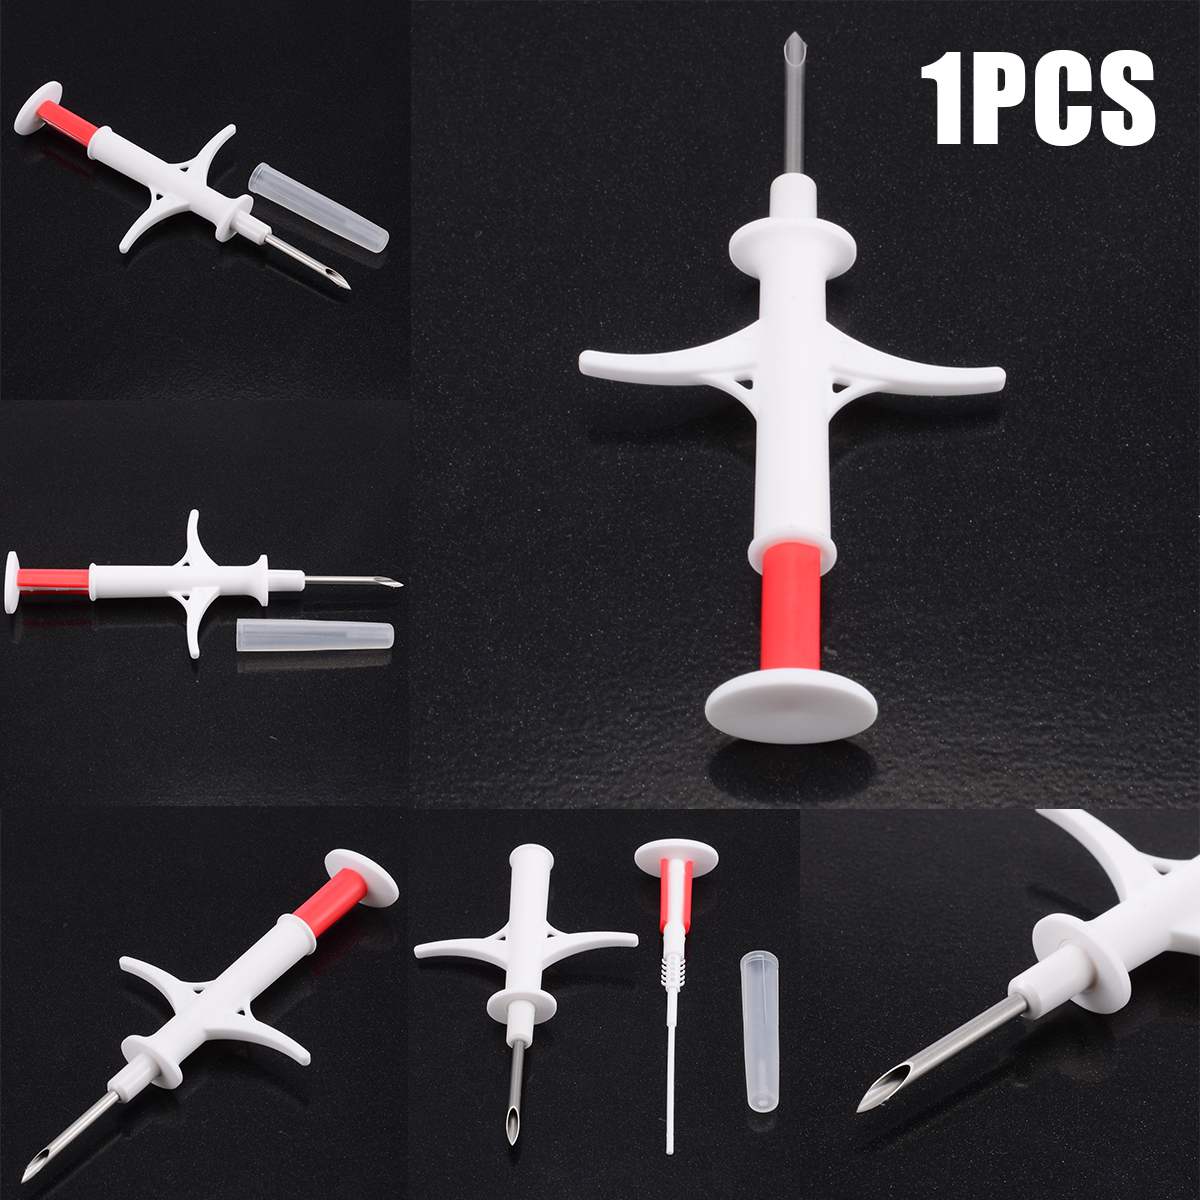 1PC Animal Pet Chip Microchip Syringe Microchip RFID Injector ISO Standard For Dog Cat Mouse Horses